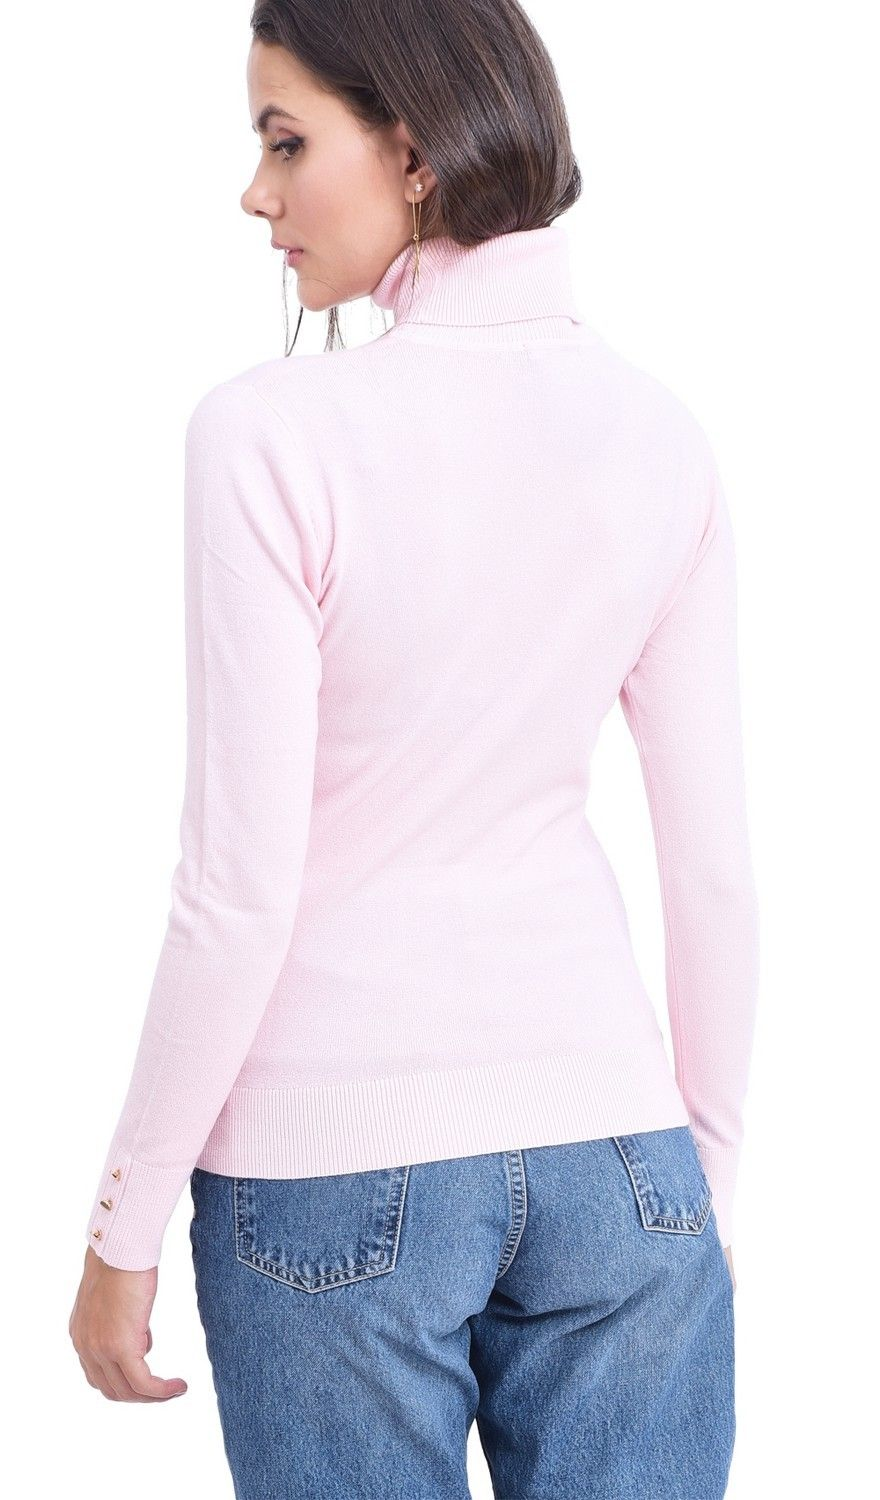 Assuili Roll Neck Sweater with Buttoned Sleeves in Pink